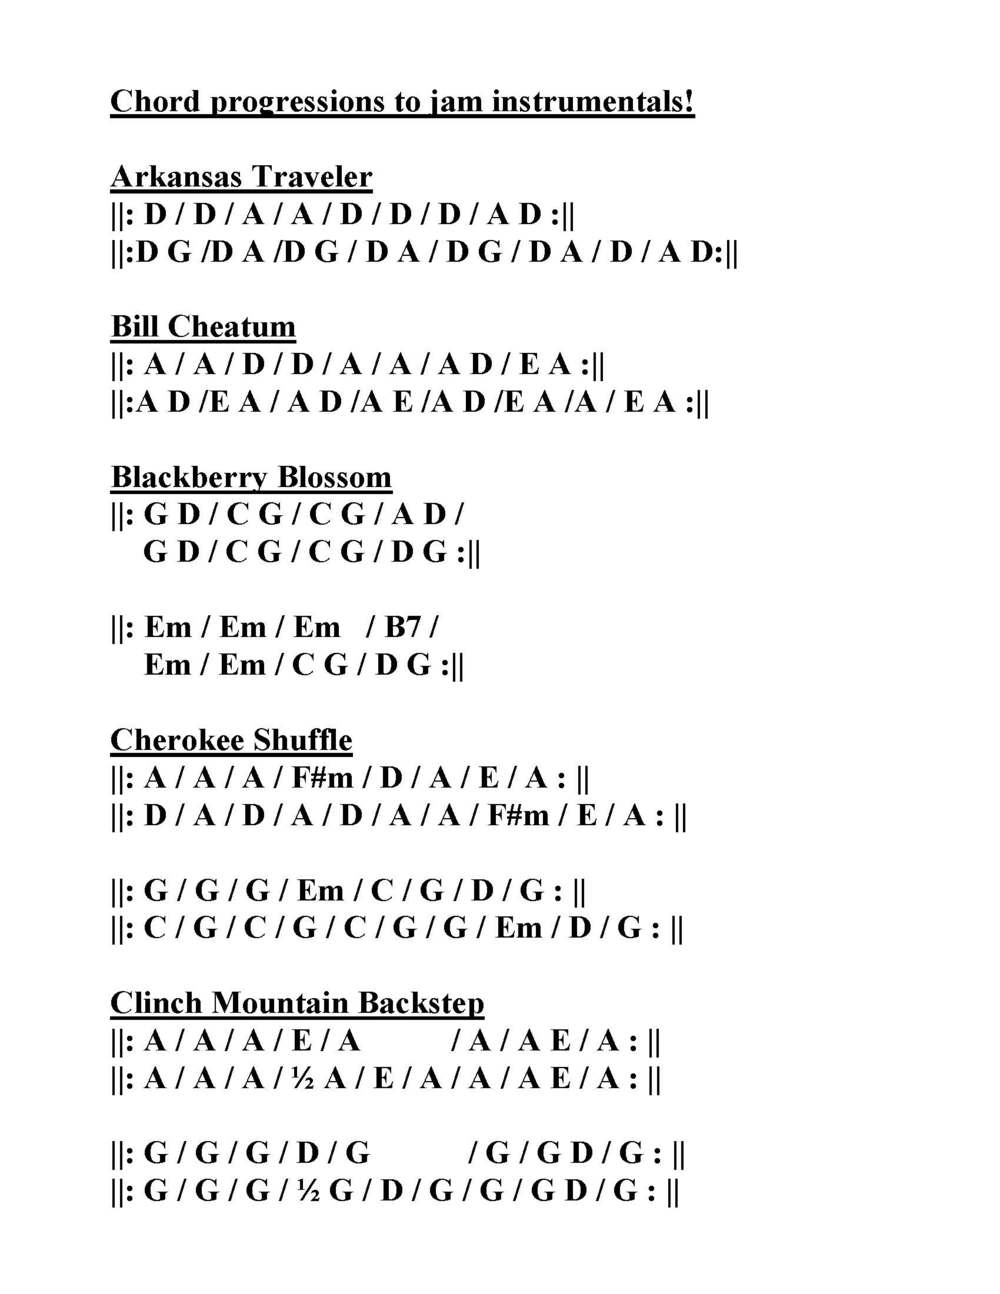 Jam Instrumental Chord Progression Chart The Handsome Ladies